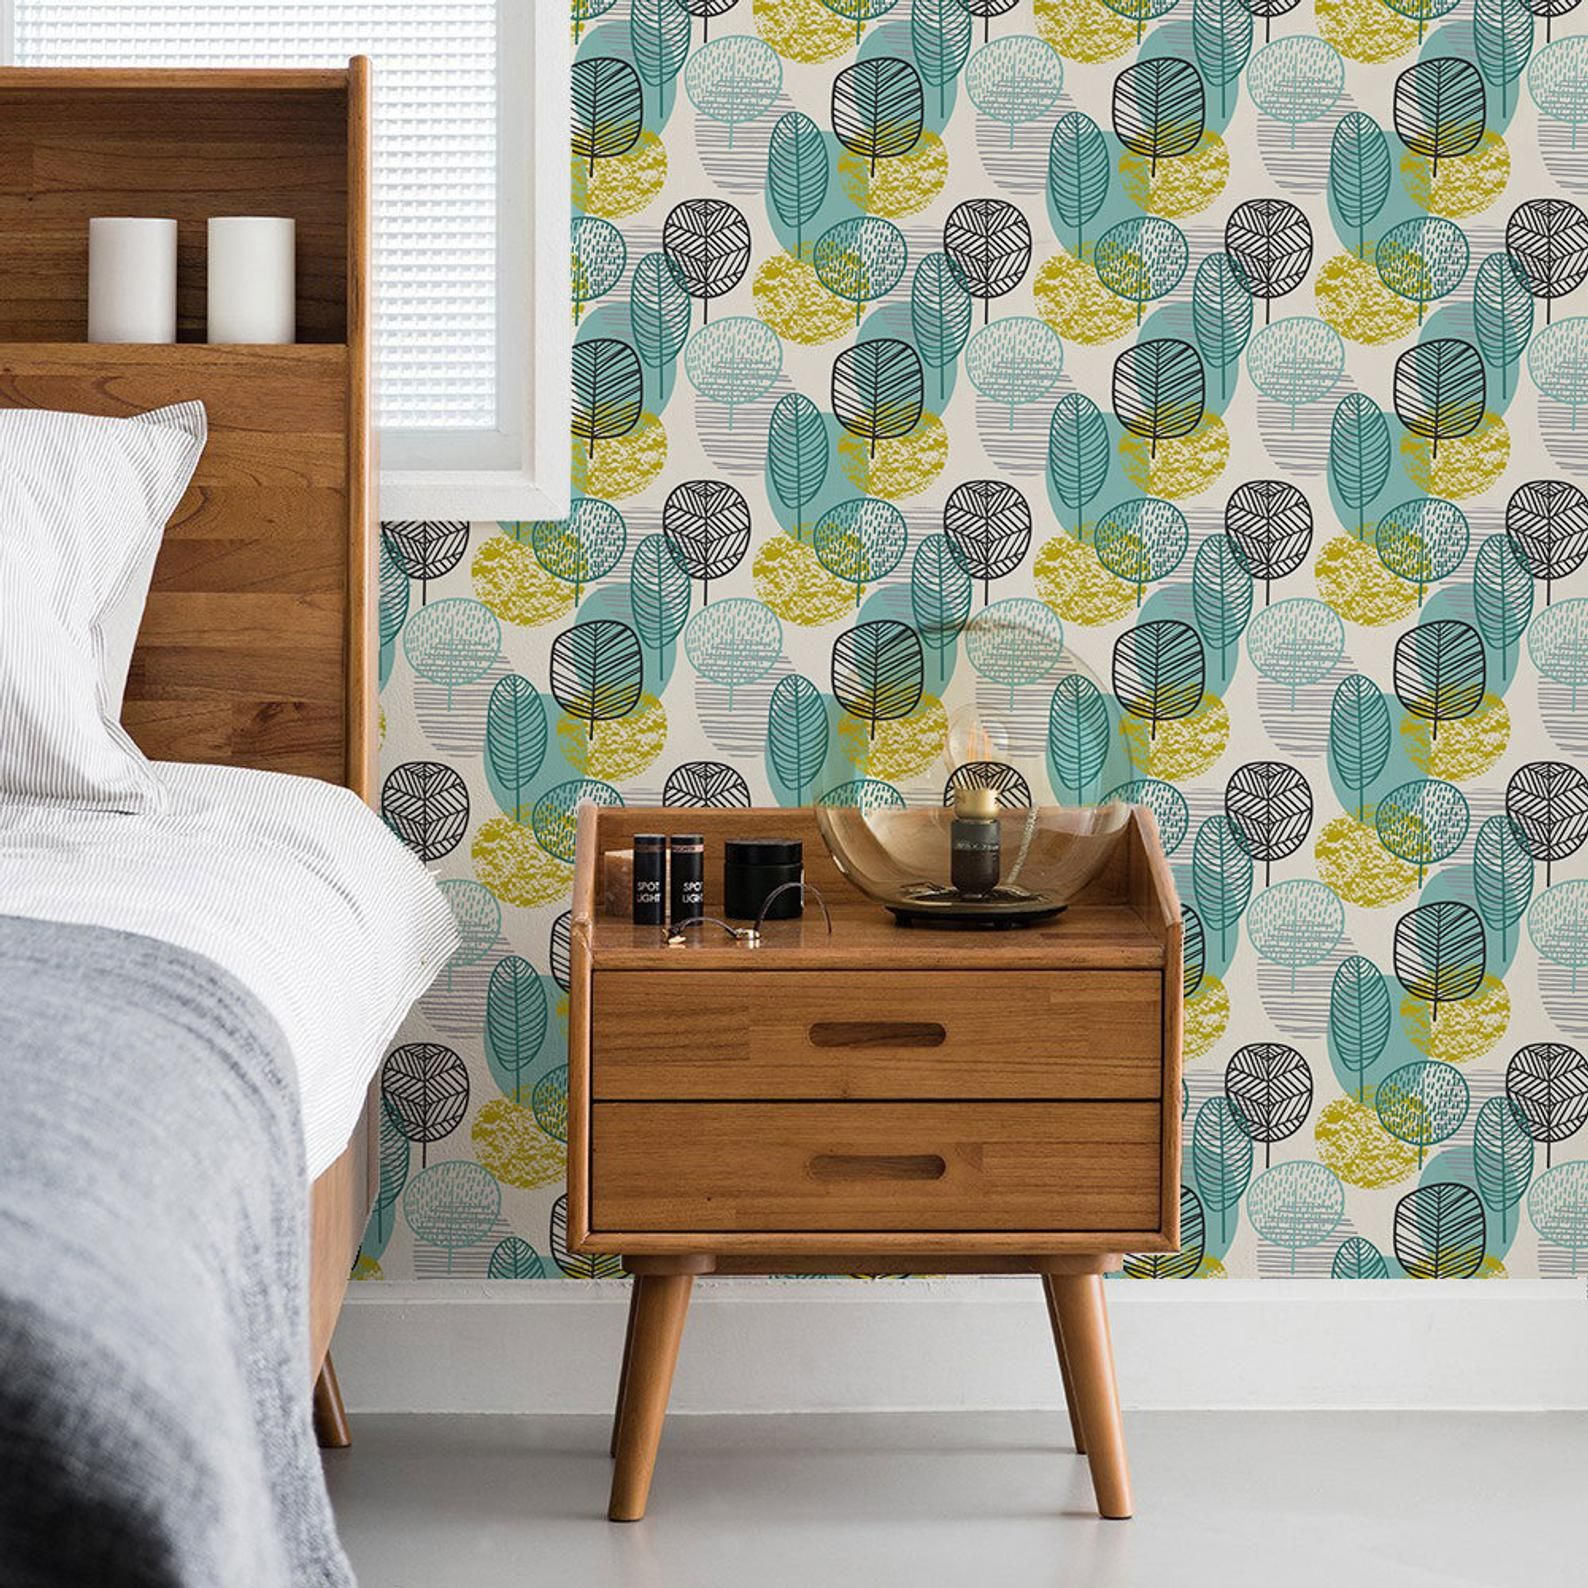 Autumn Leaves Wallpaper Removable Wallpaper Peel And Stick Wallpaper Self Adhesive Wallpaper Leaf Wallpaper Autumn Leaves Wallpaper Removable Wallpaper